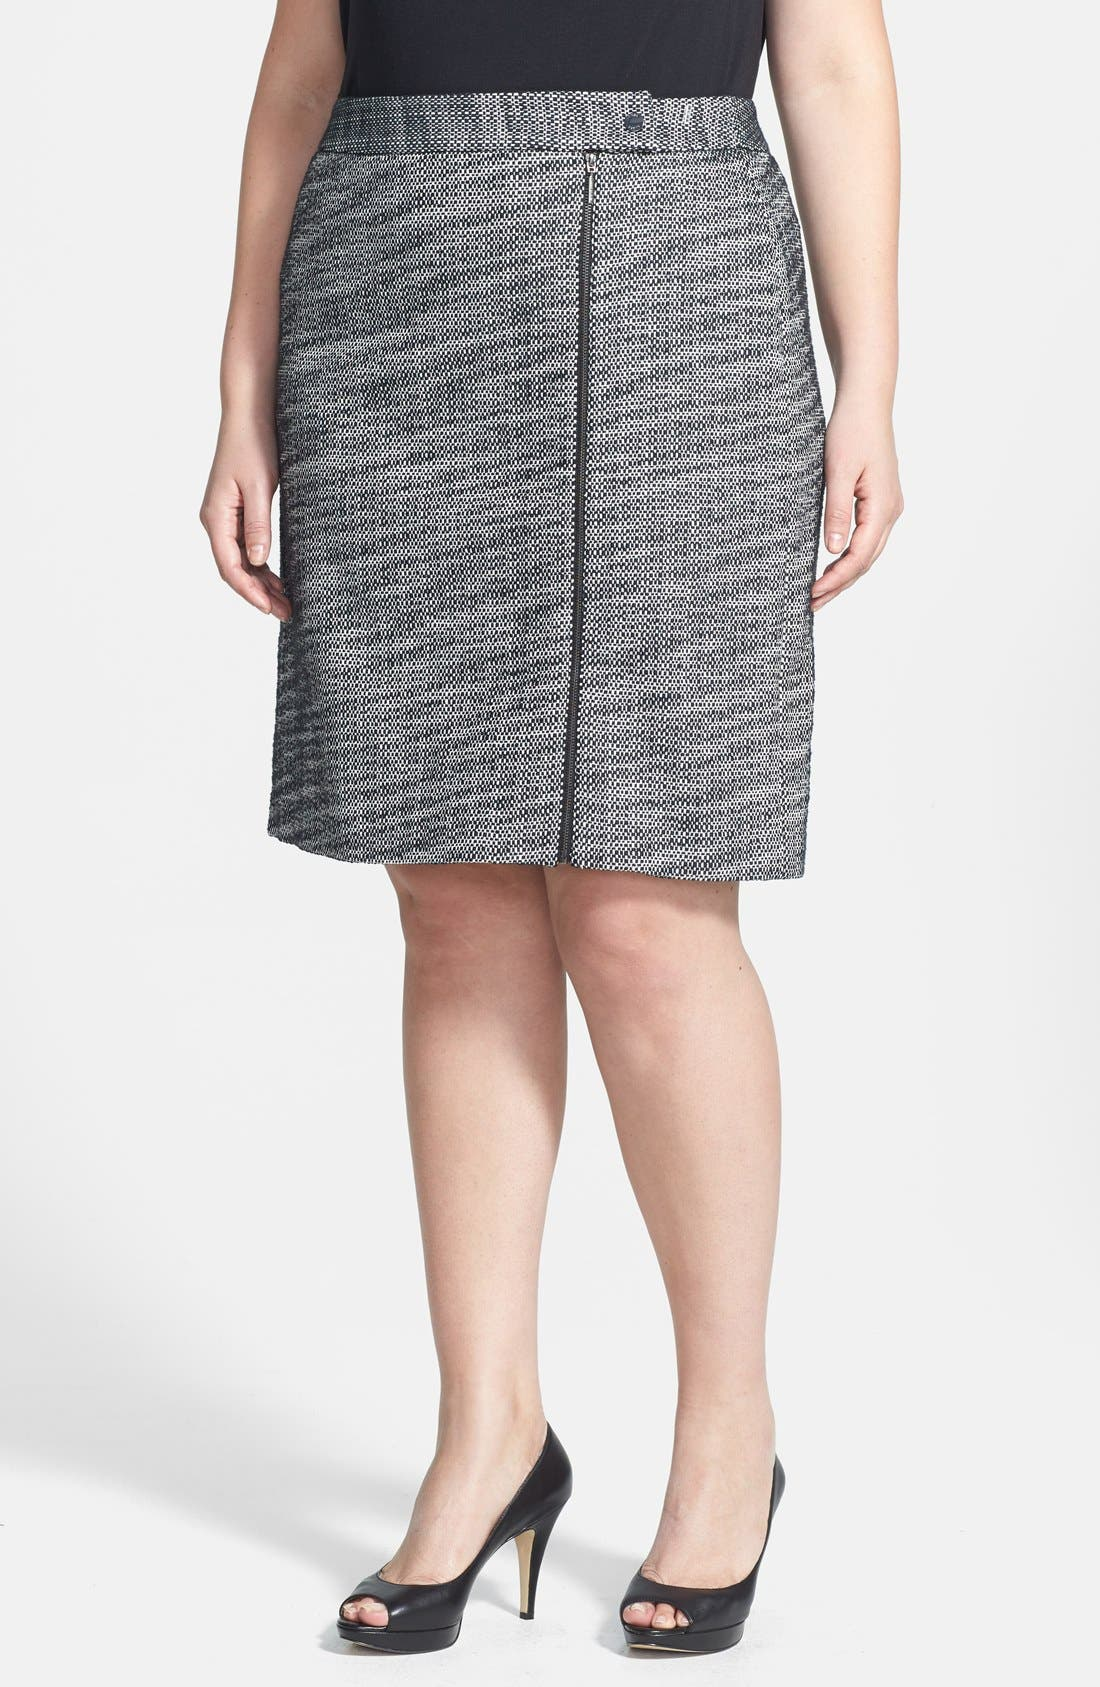 Alternate Image 1 Selected - Anne Klein Graphic Tweed A-Line Skirt (Plus Size)